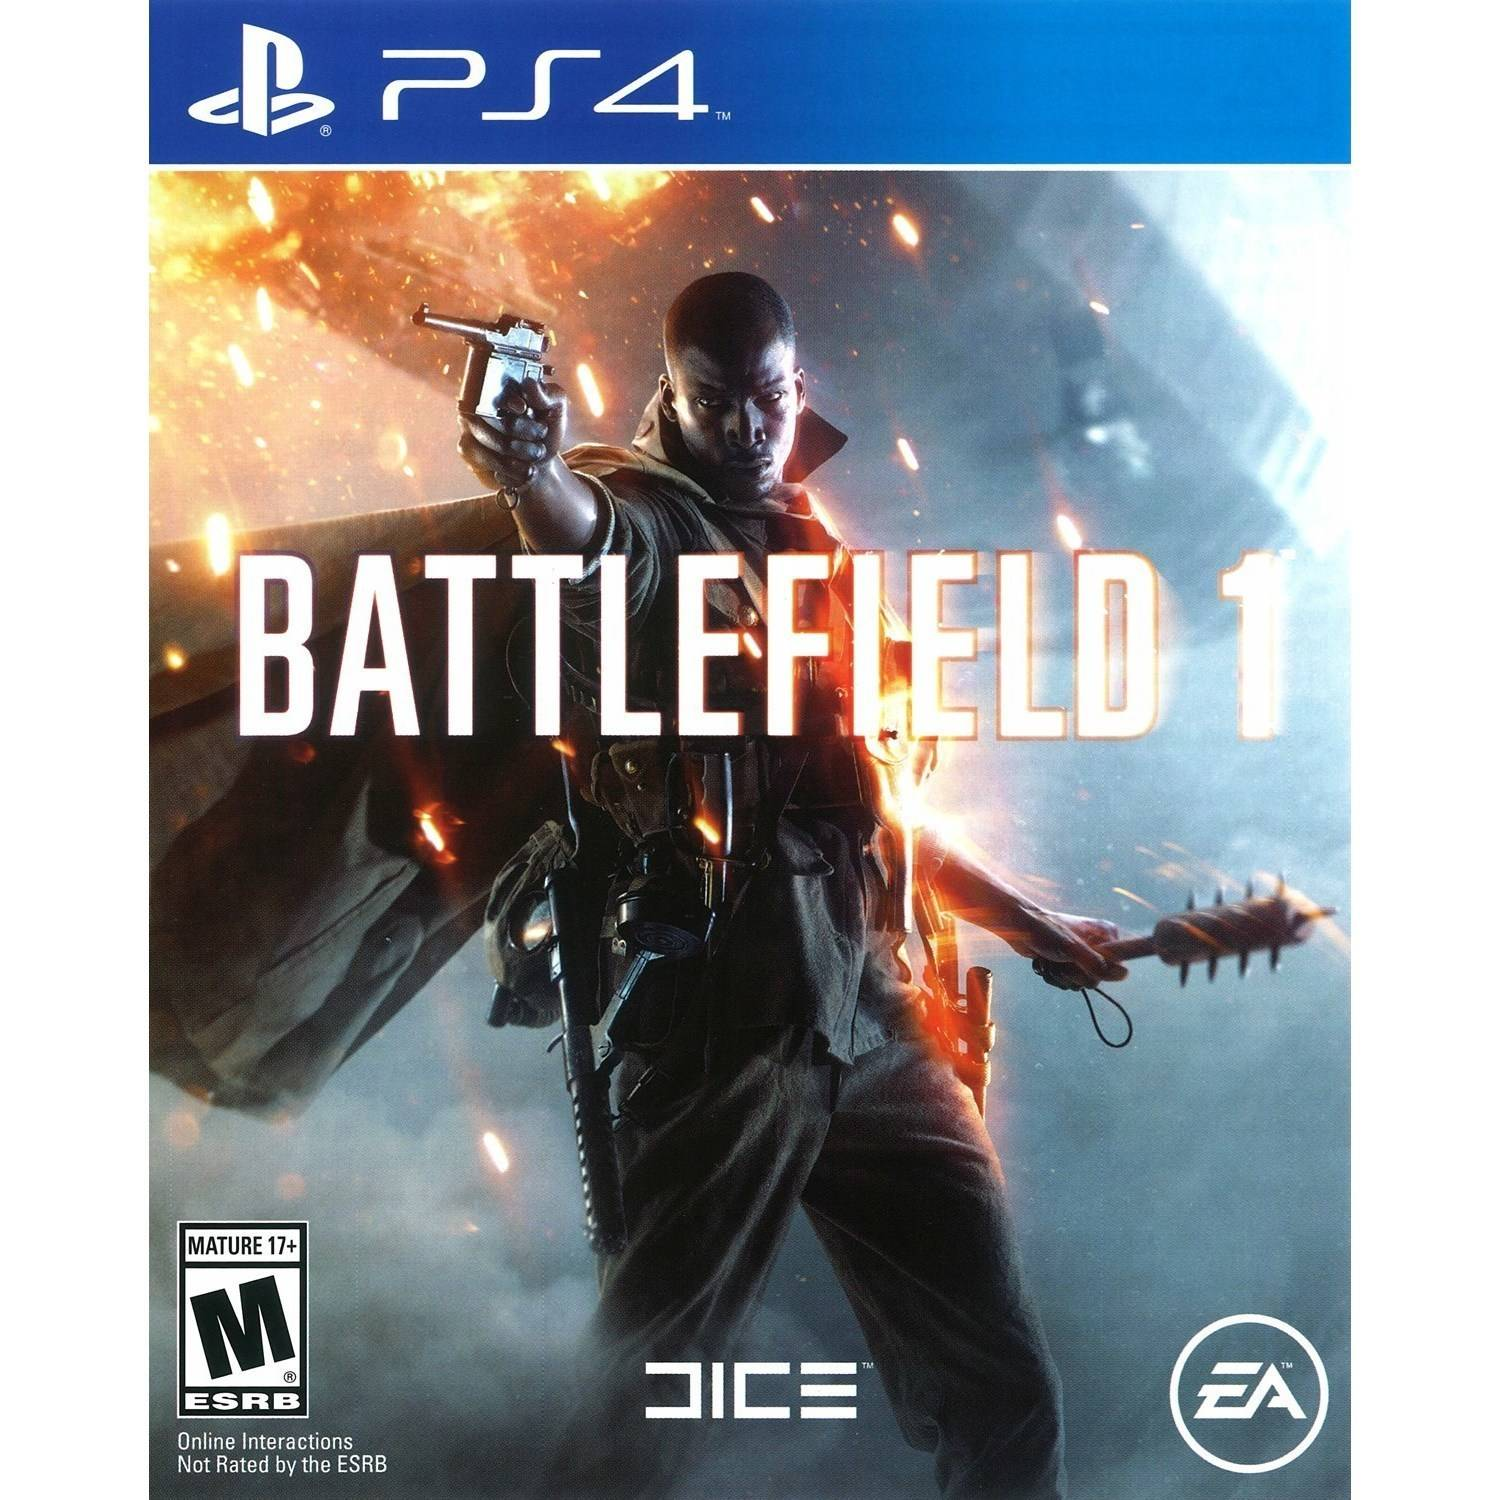 Battlefield 1 Used (Playstation 4) Electronic Arts by EA Digital Illusions Creative Entertainment AB (DICE)